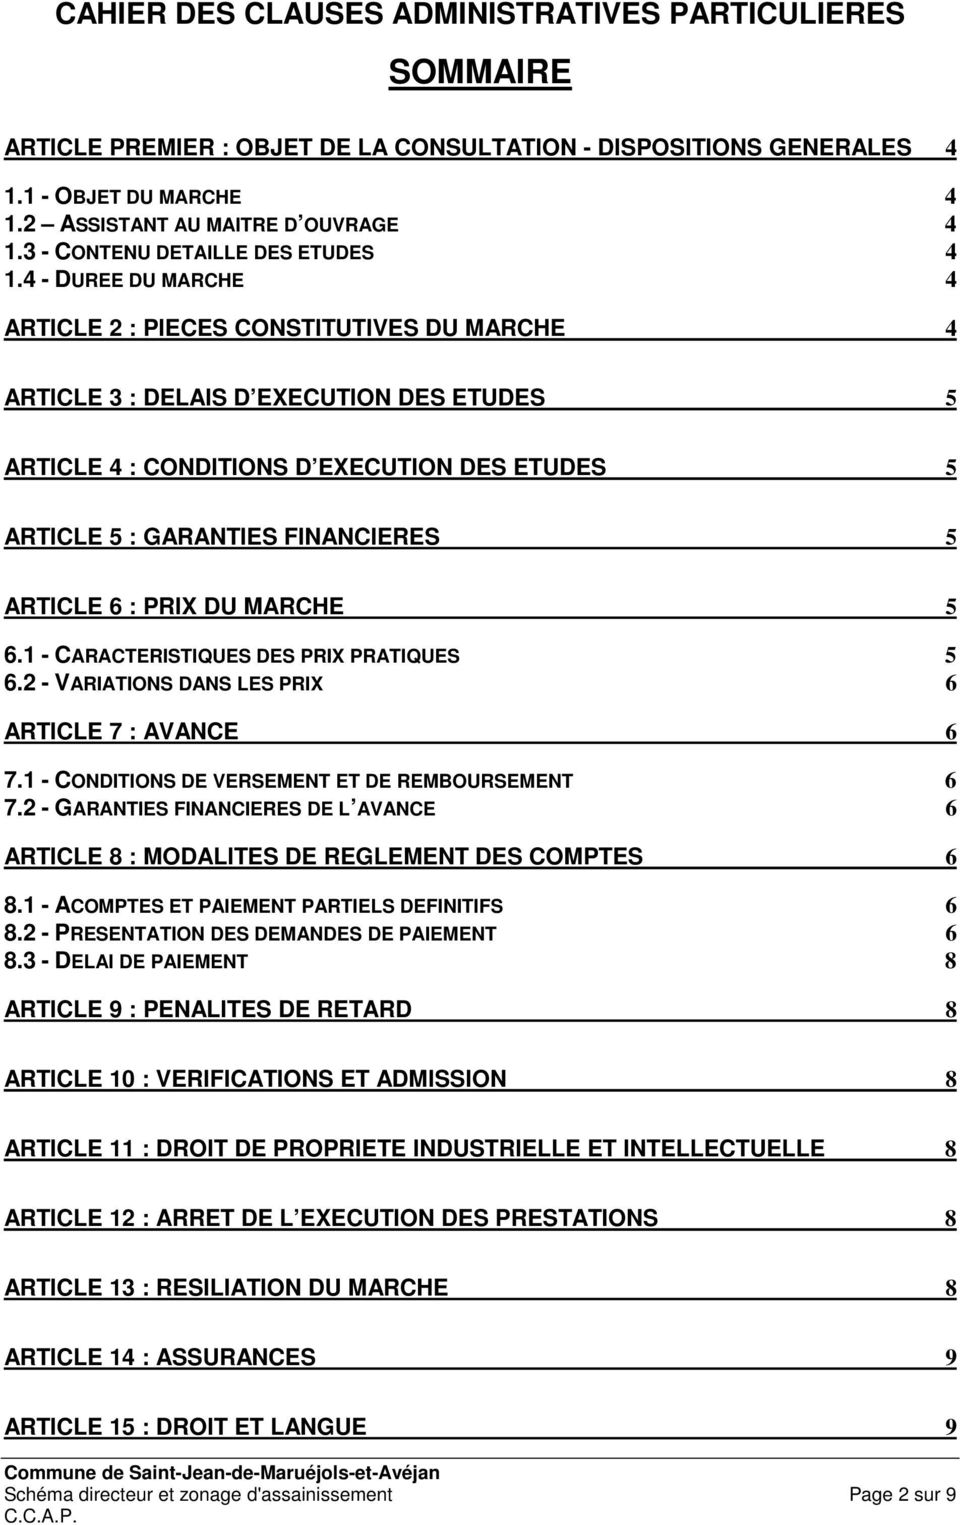 4 - DUREE DU MARCHE 4 ARTICLE 2 : PIECES CONSTITUTIVES DU MARCHE 4 ARTICLE 3 : DELAIS D EXECUTION DES ETUDES 5 ARTICLE 4 : CONDITIONS D EXECUTION DES ETUDES 5 ARTICLE 5 : GARANTIES FINANCIERES 5